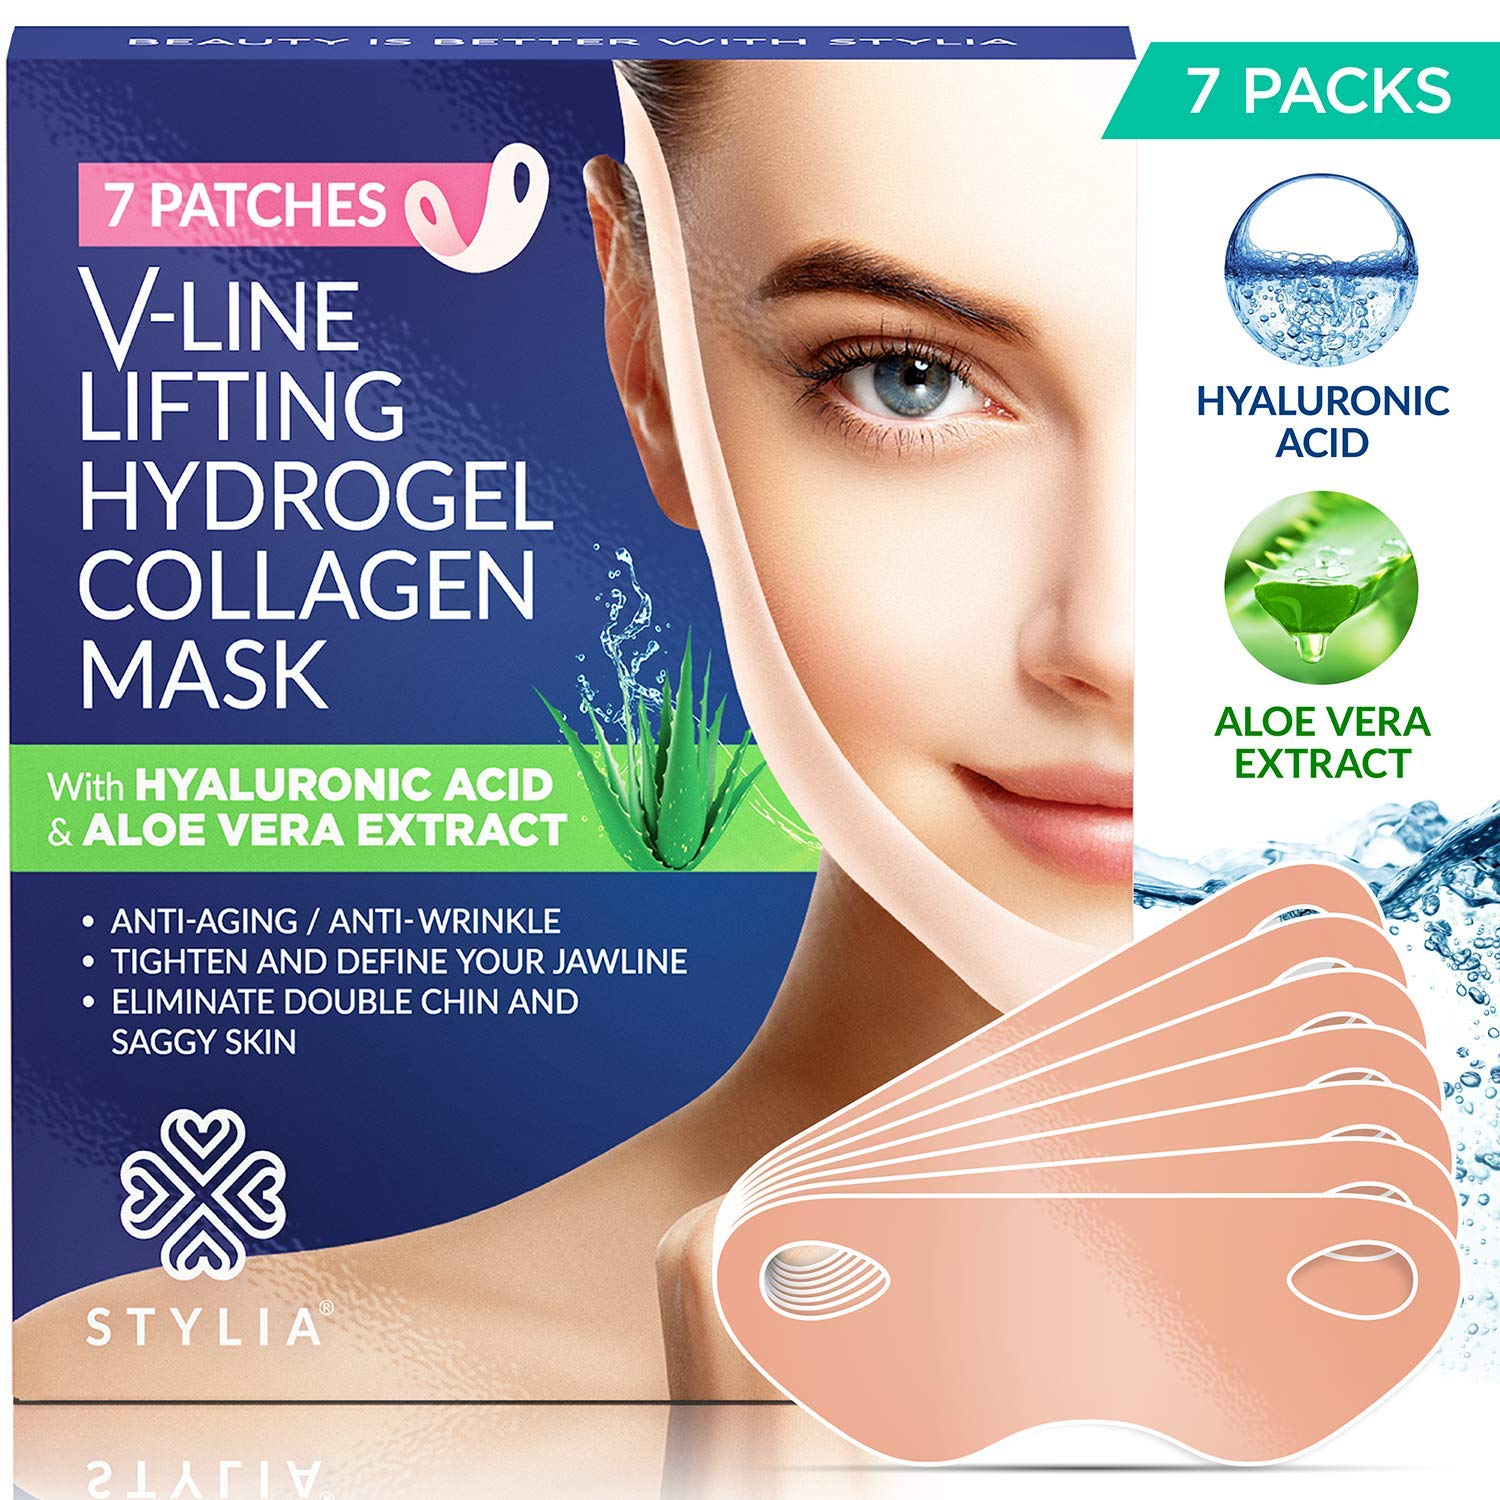 7 Piece V Line Shaping Face Masks - Lifting Hydrogel Collagen with Aloe Vera - Anti-Aging and Anti-Wrinkle Band - Double Chin Reducer Strap - Contouring, Slimming and Firming Face Lift Sheet by Stylia